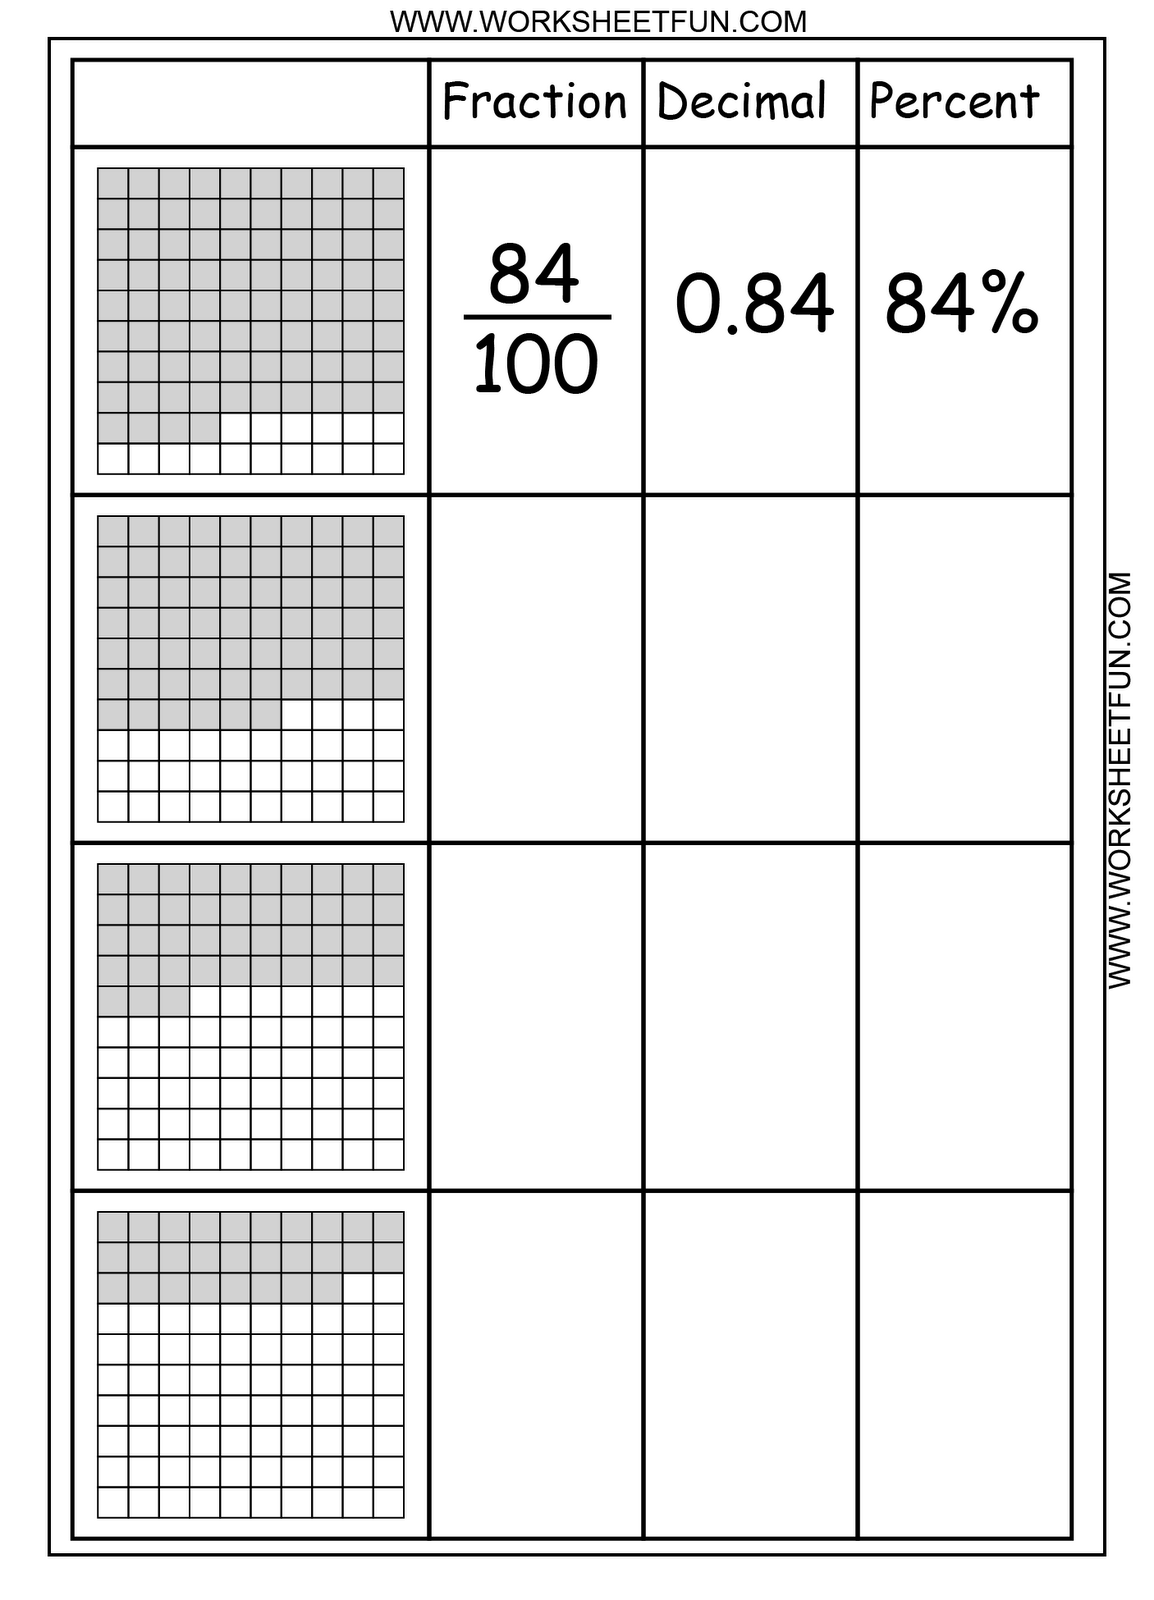 math worksheet : 1000 images about fractions decimals percents on pinterest  : Converting Fractions To Percents Worksheet